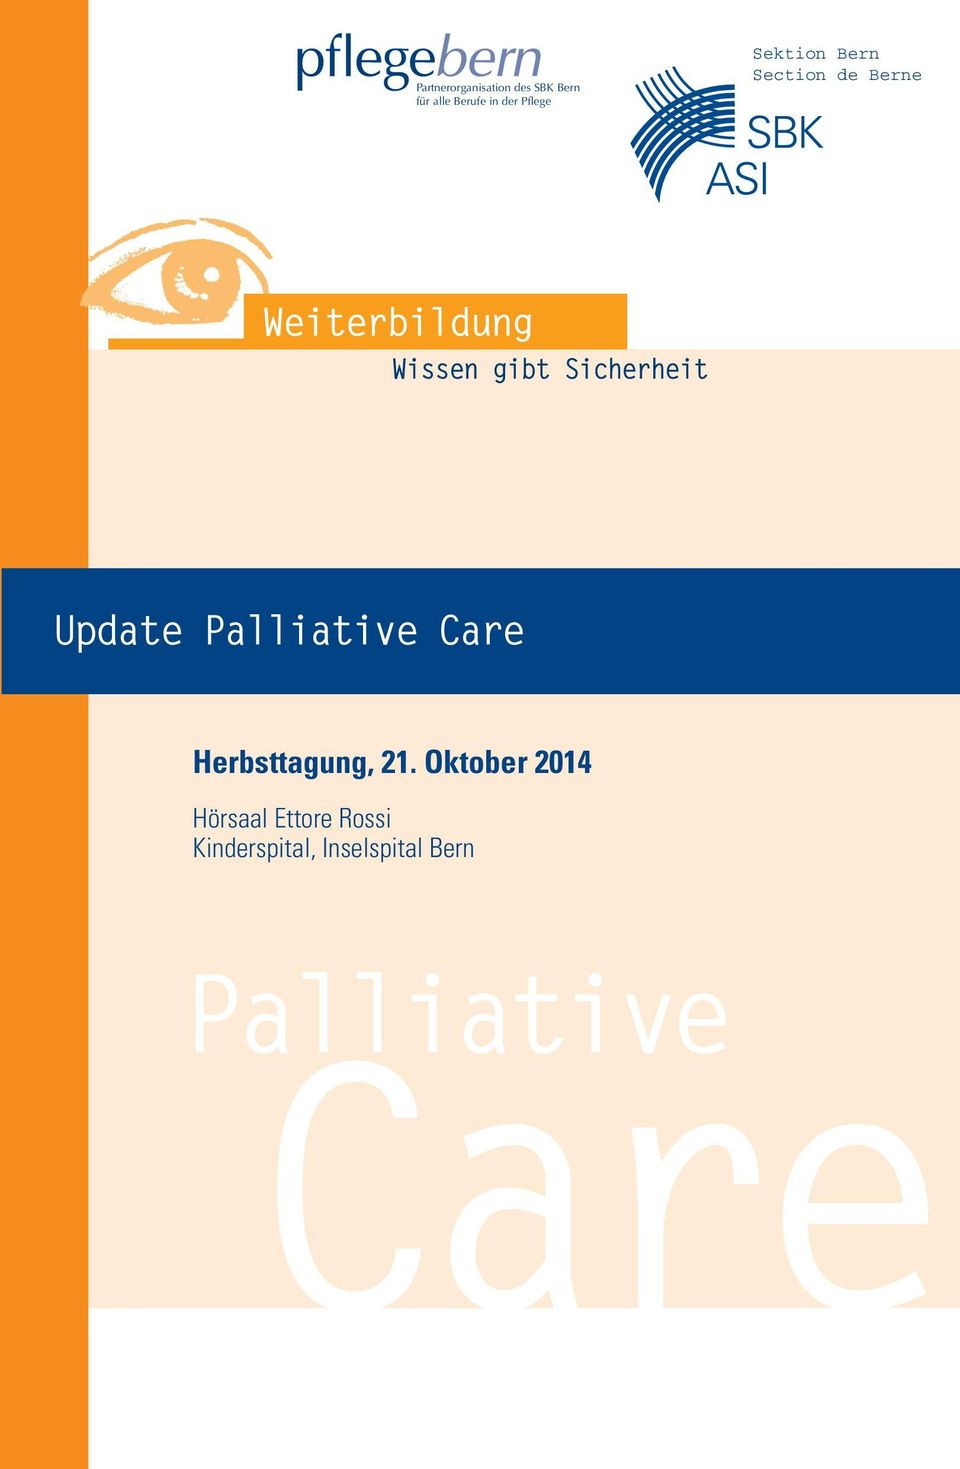 Palliative Care Herbsttagung, 21.